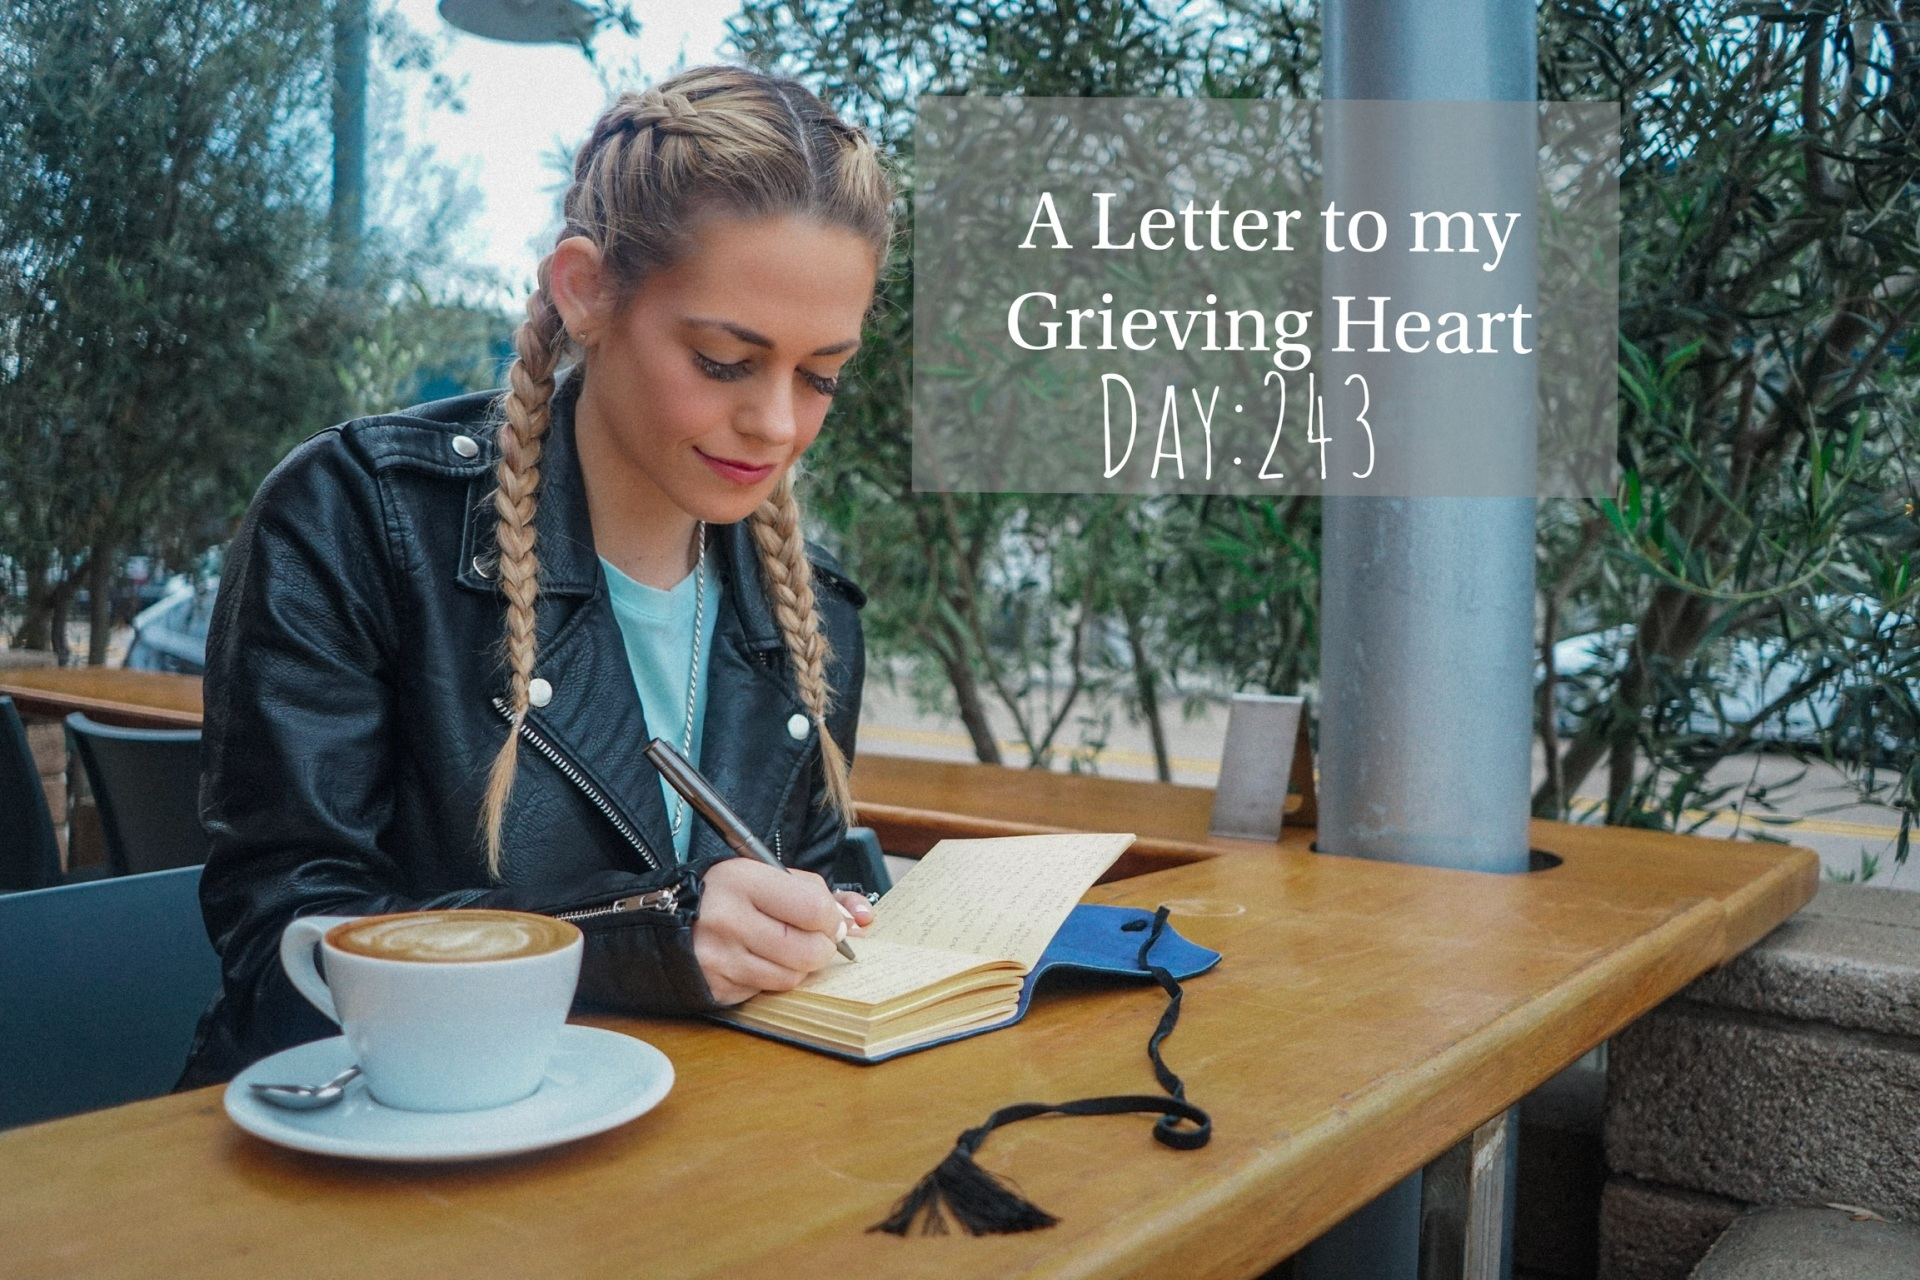 A Letter to my Grieving Heart